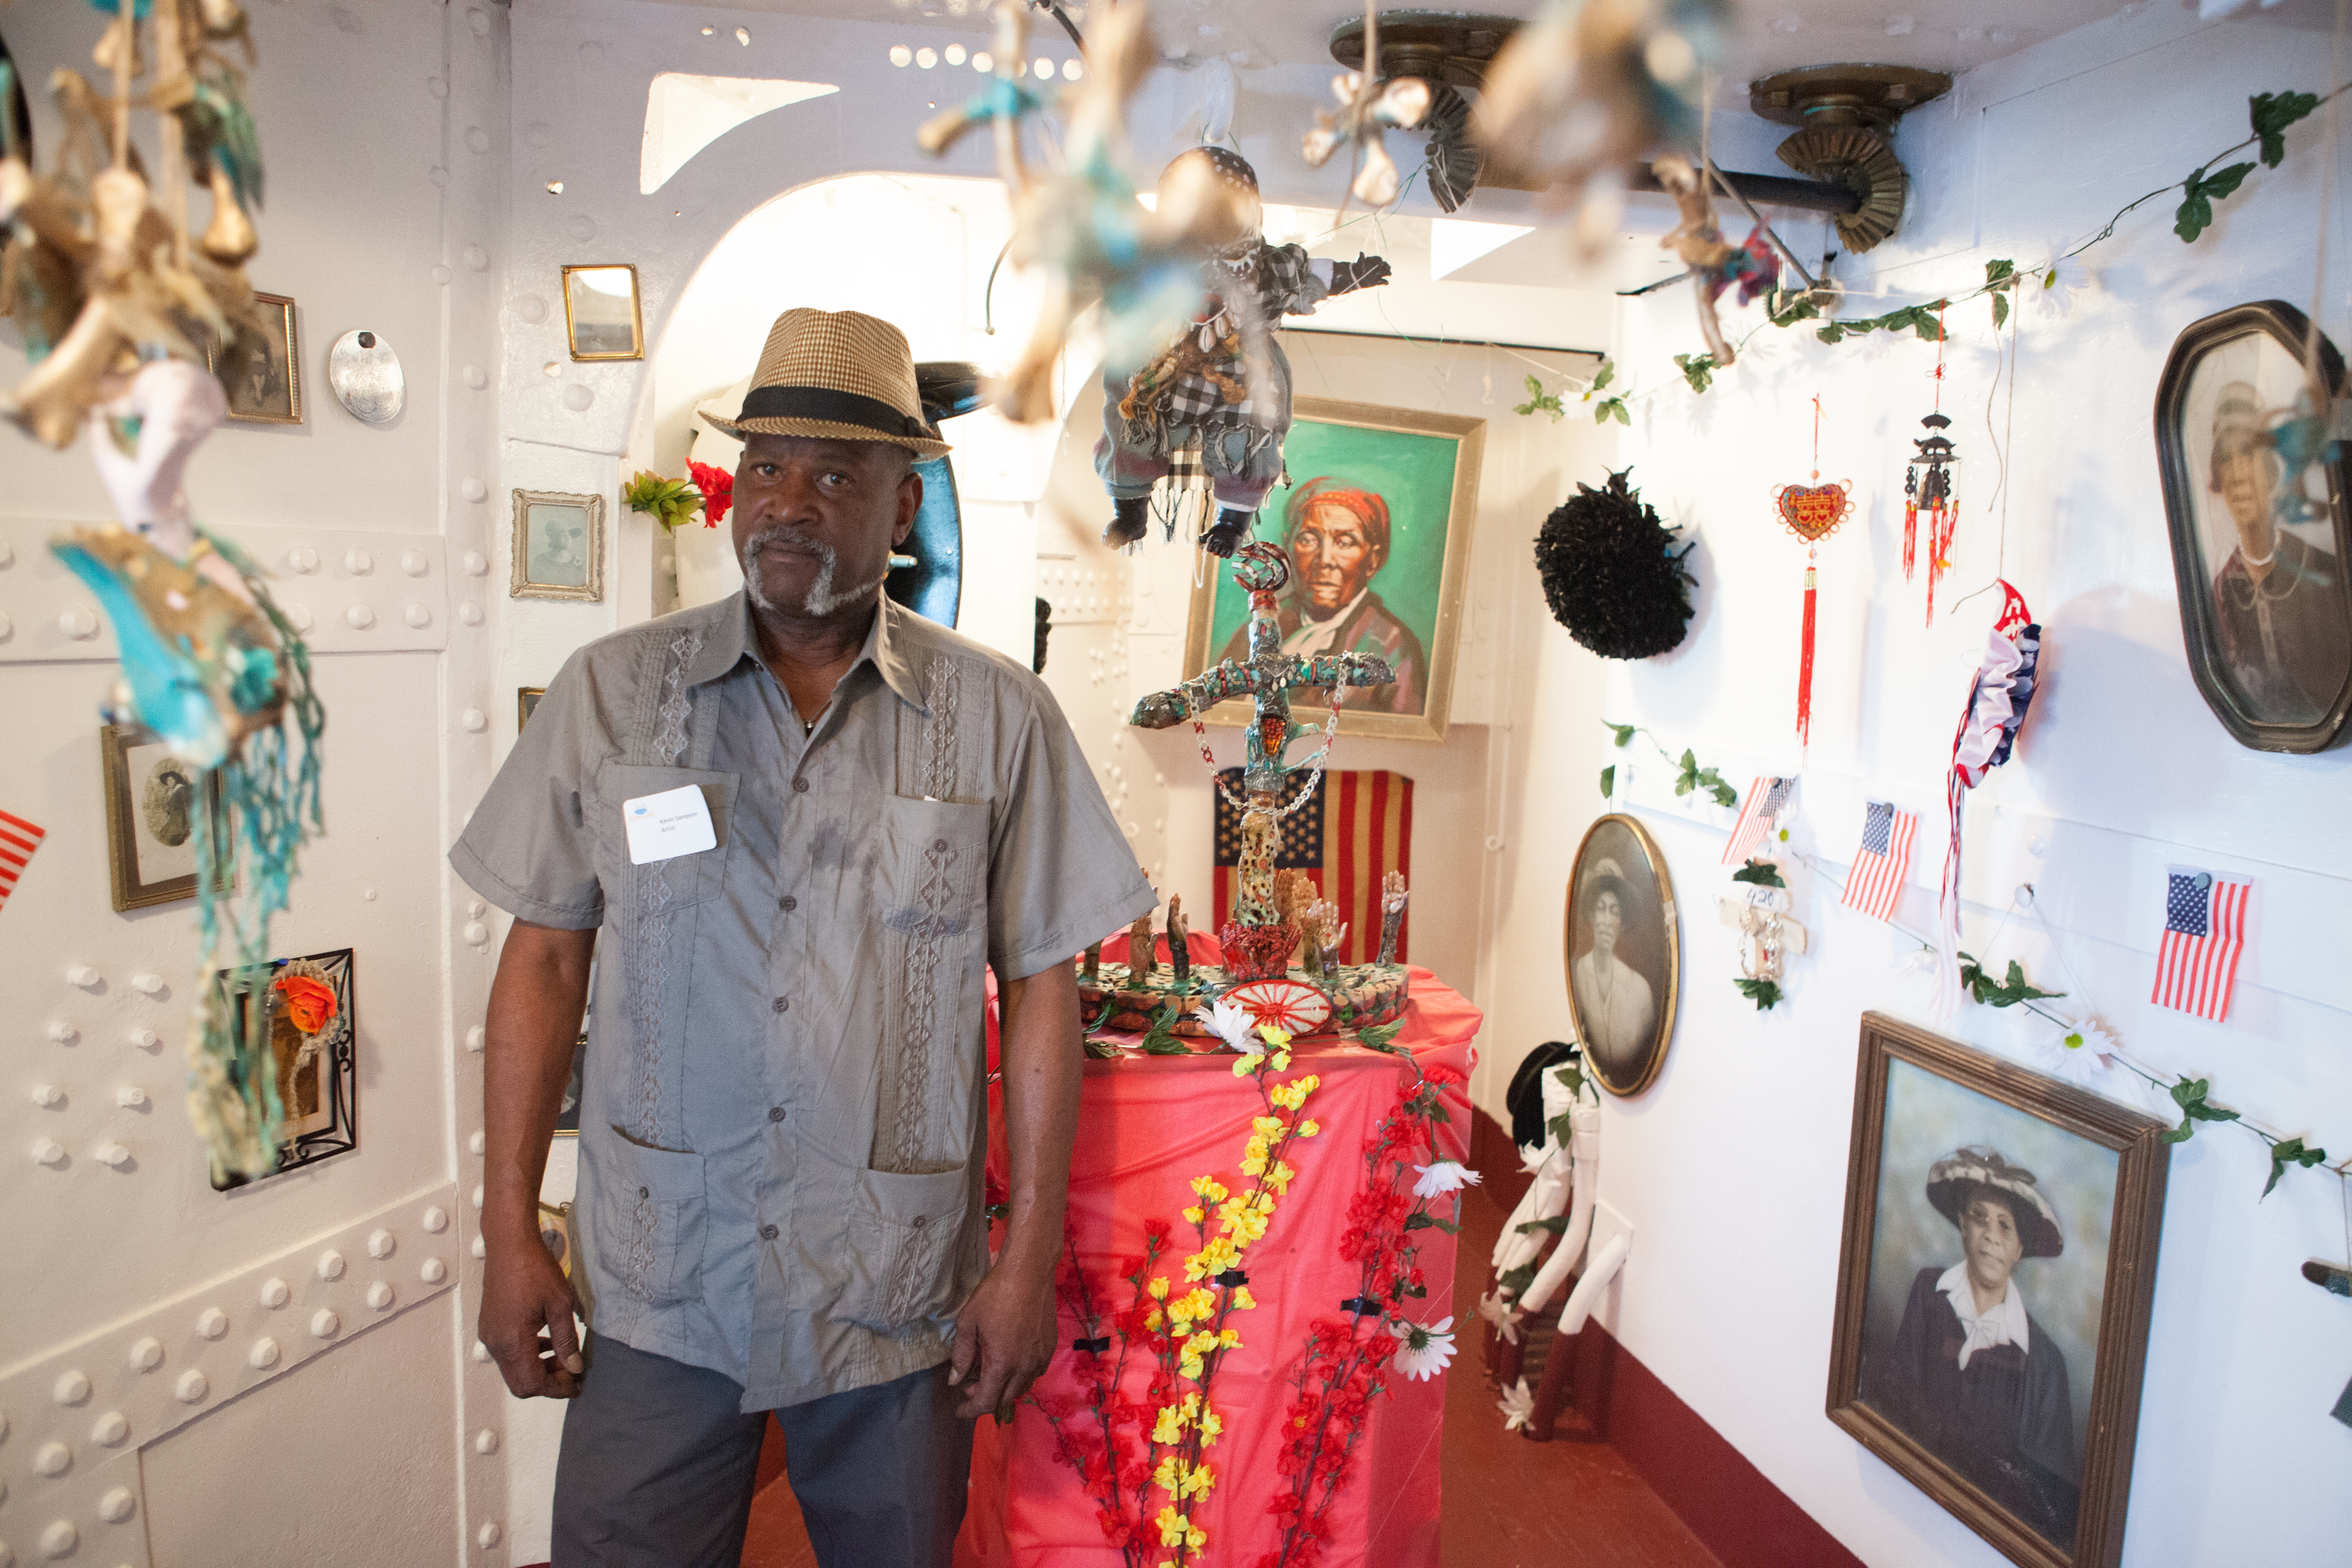 Kevin Blythe Sampson at his Artship Olympia installation | Plate3 Photography